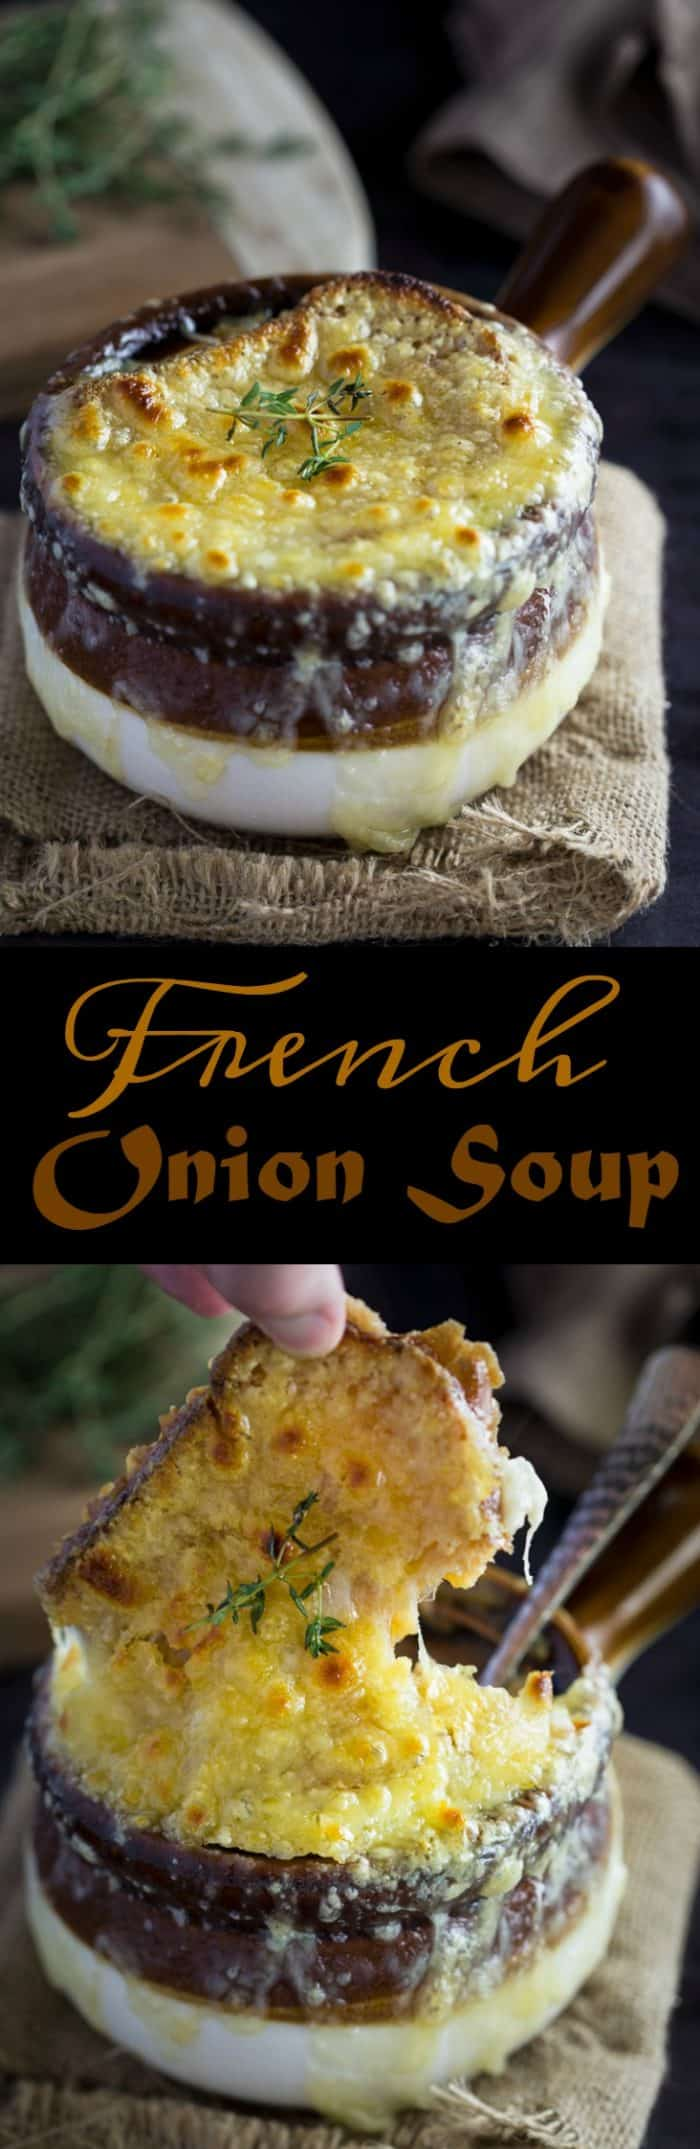 This classic French Onion Soup has a rich, silky broth made from thinly sliced onions, butter, white wine, beef broth, fresh thyme and bay leaves. All topped with a toasted baguette and hot, bubbly Gruyere cheese. | The Cozy Cook | #soup #frenchonionsoup #onions #recipe #easyrecipes #winterrecipes #gruyere